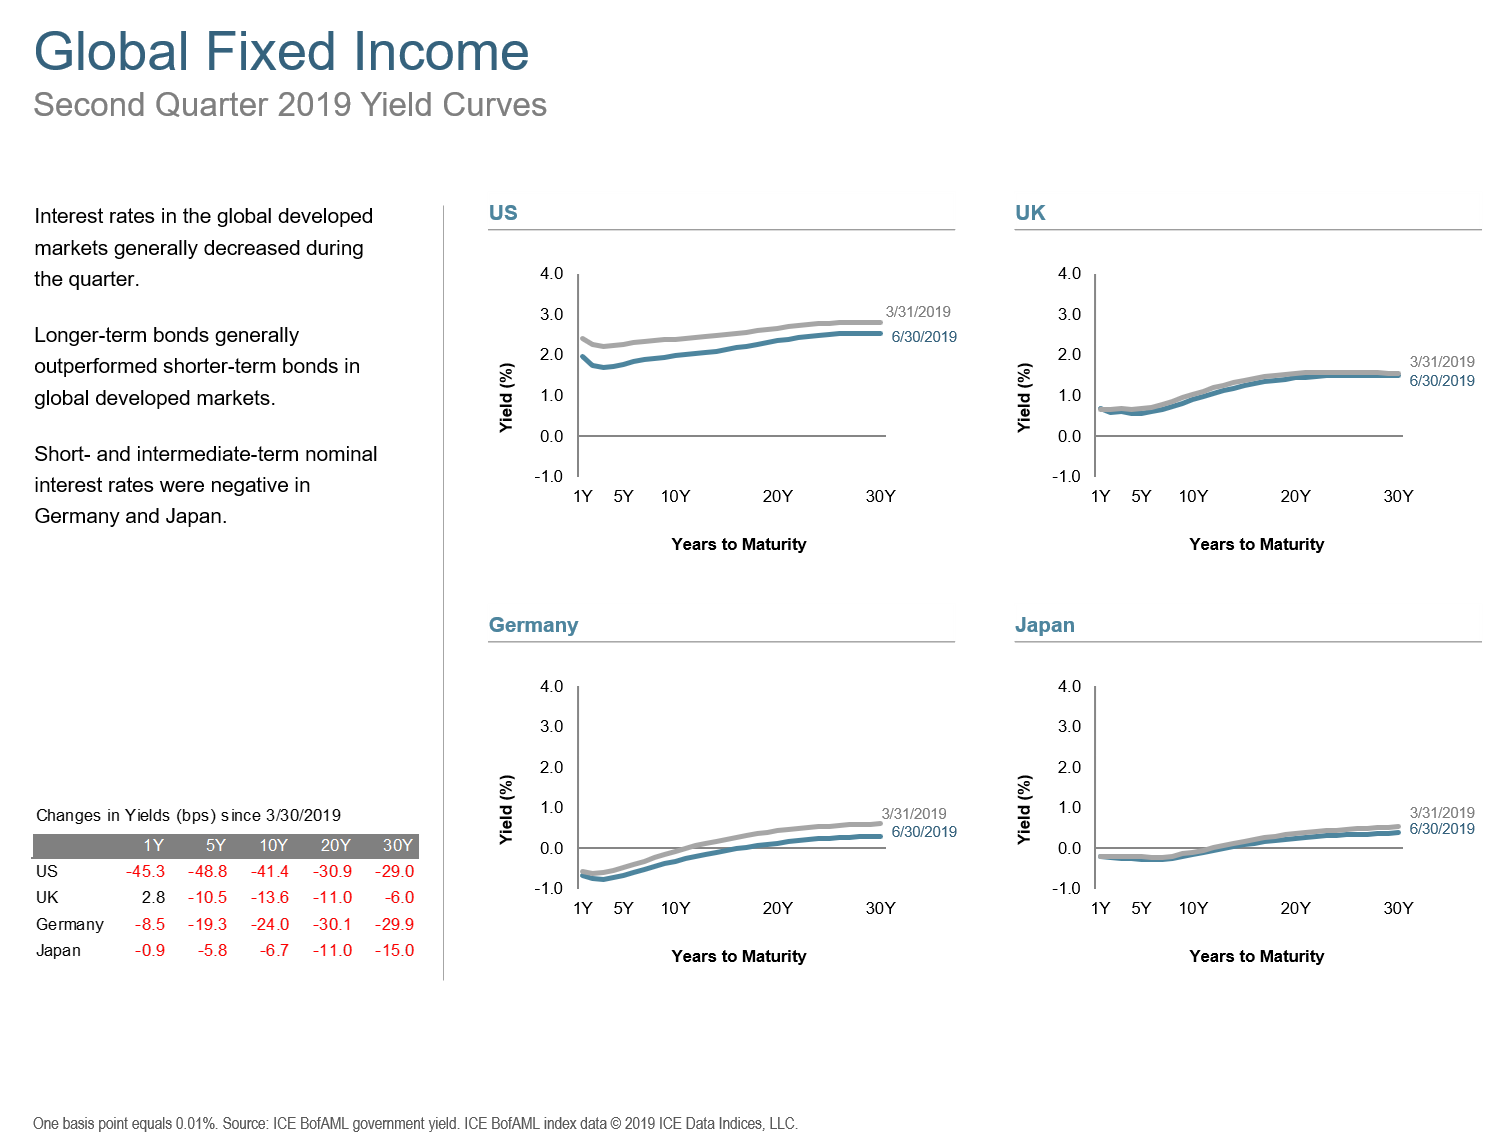 Q2 2019 Global Fixed Income